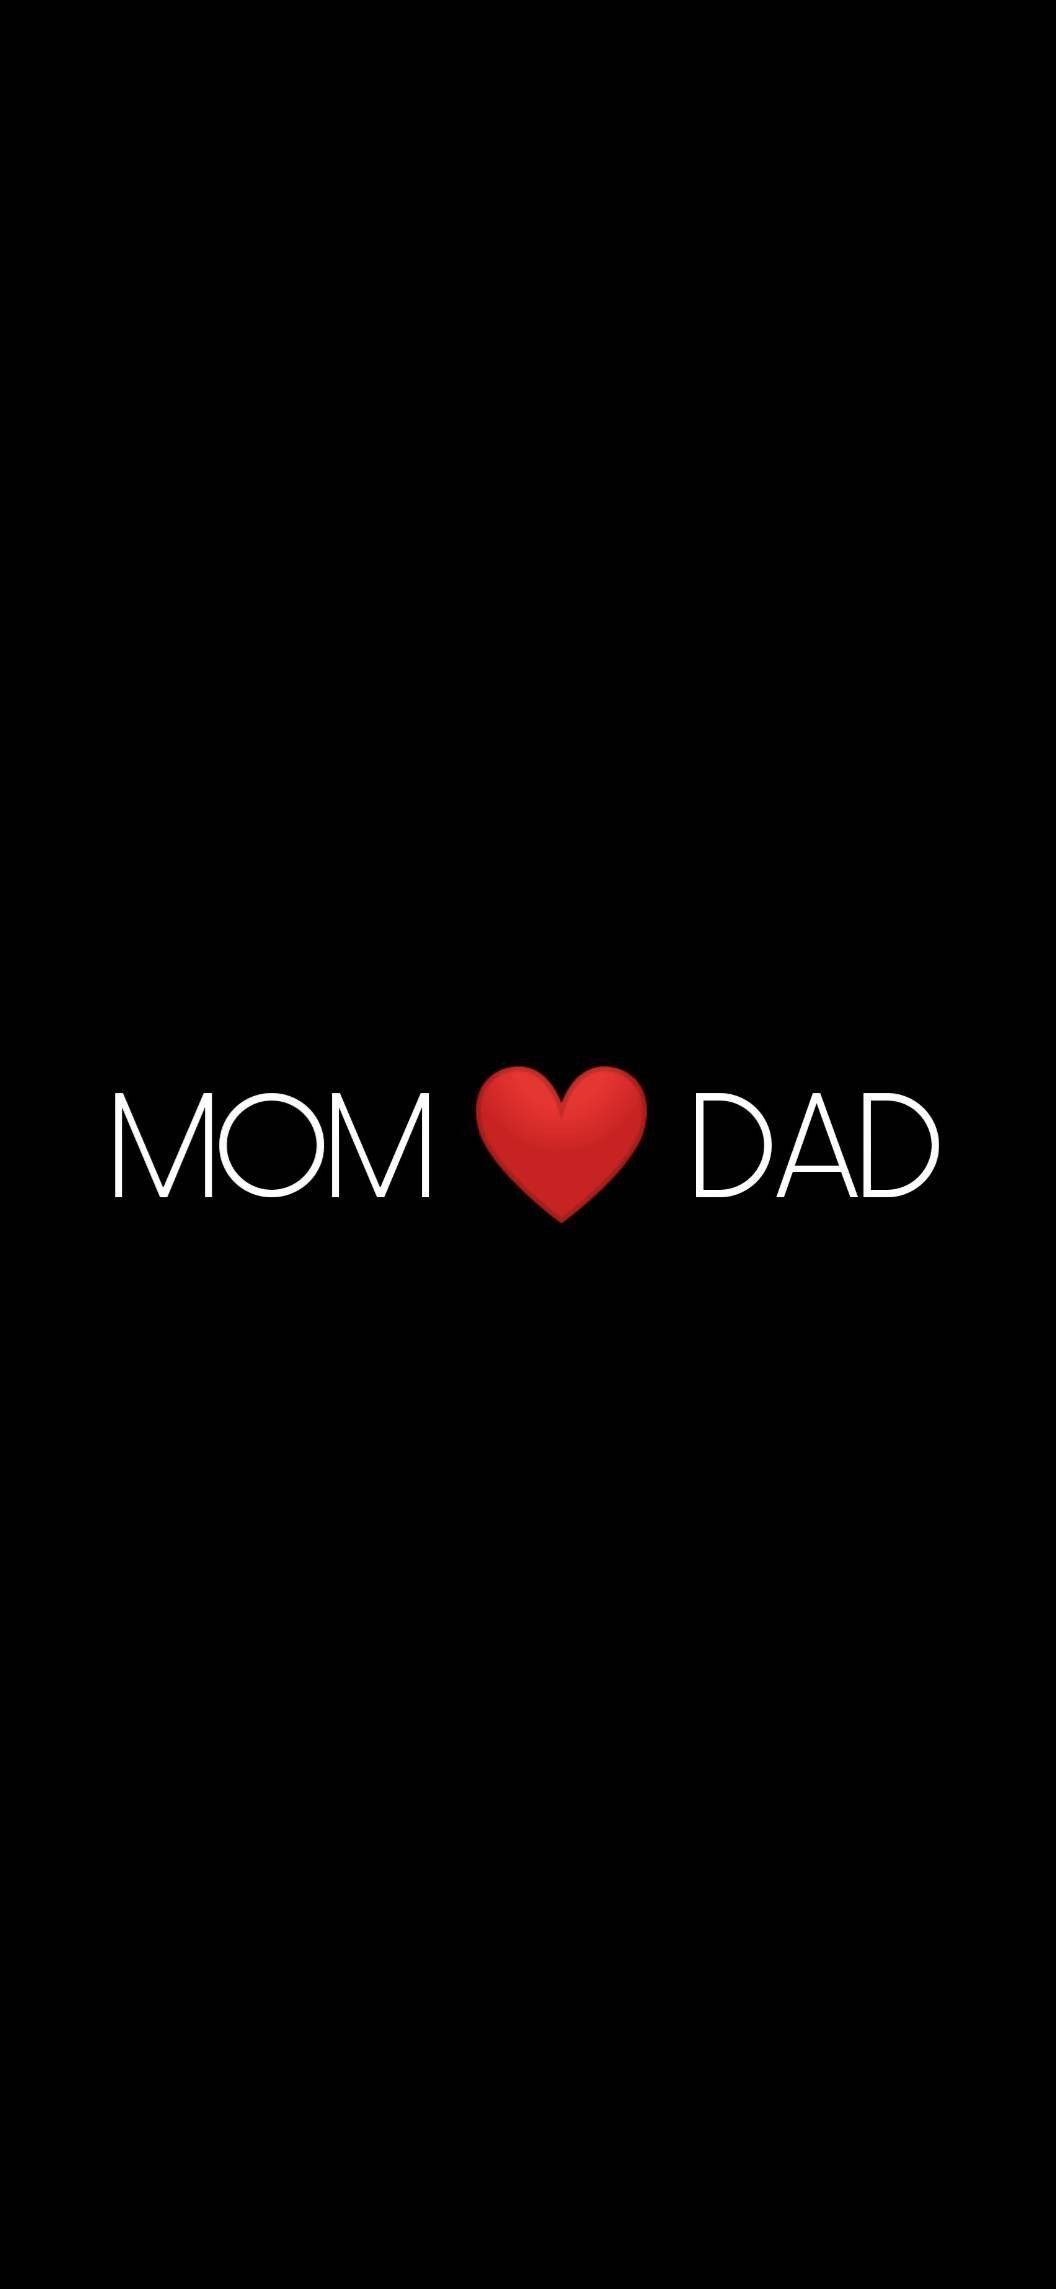 Mom And Dad Wallpapers Top Free Mom And Dad Backgrounds Wallpaperaccess For his purpose here we're providing the biggest collection of sherawali mata images for navratri, जय माँ दुर्गा वॉलपेपर. mom and dad wallpapers top free mom